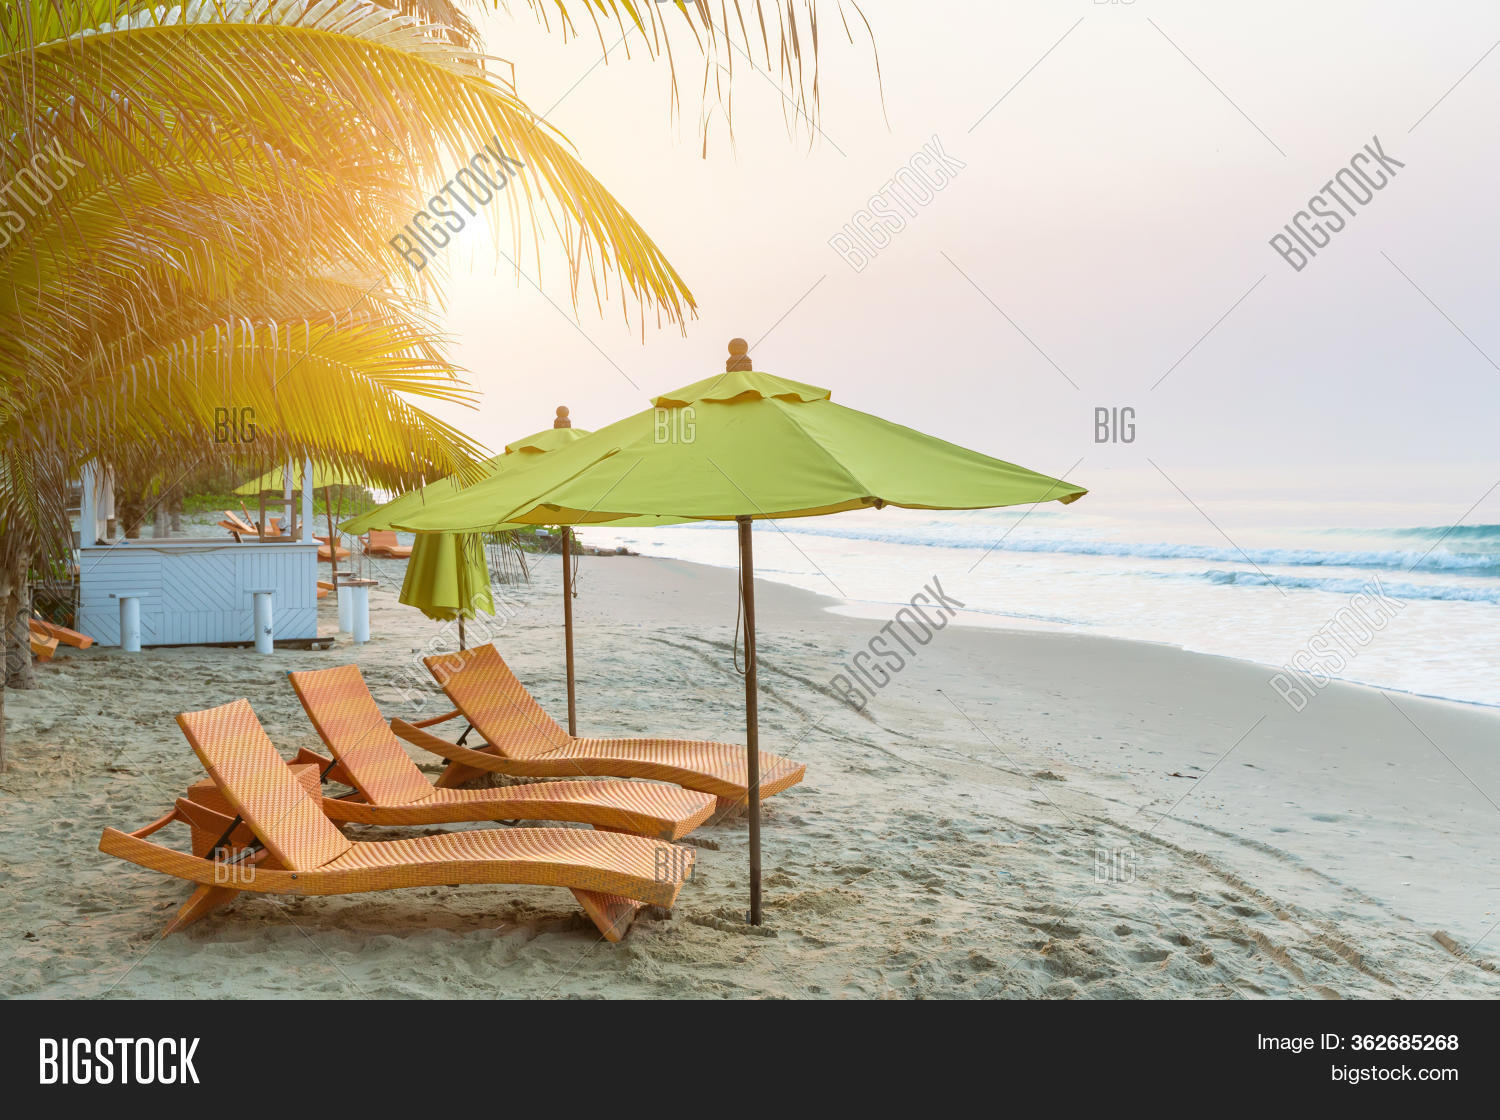 Beach Chair Under Big Image Photo Free Trial Bigstock